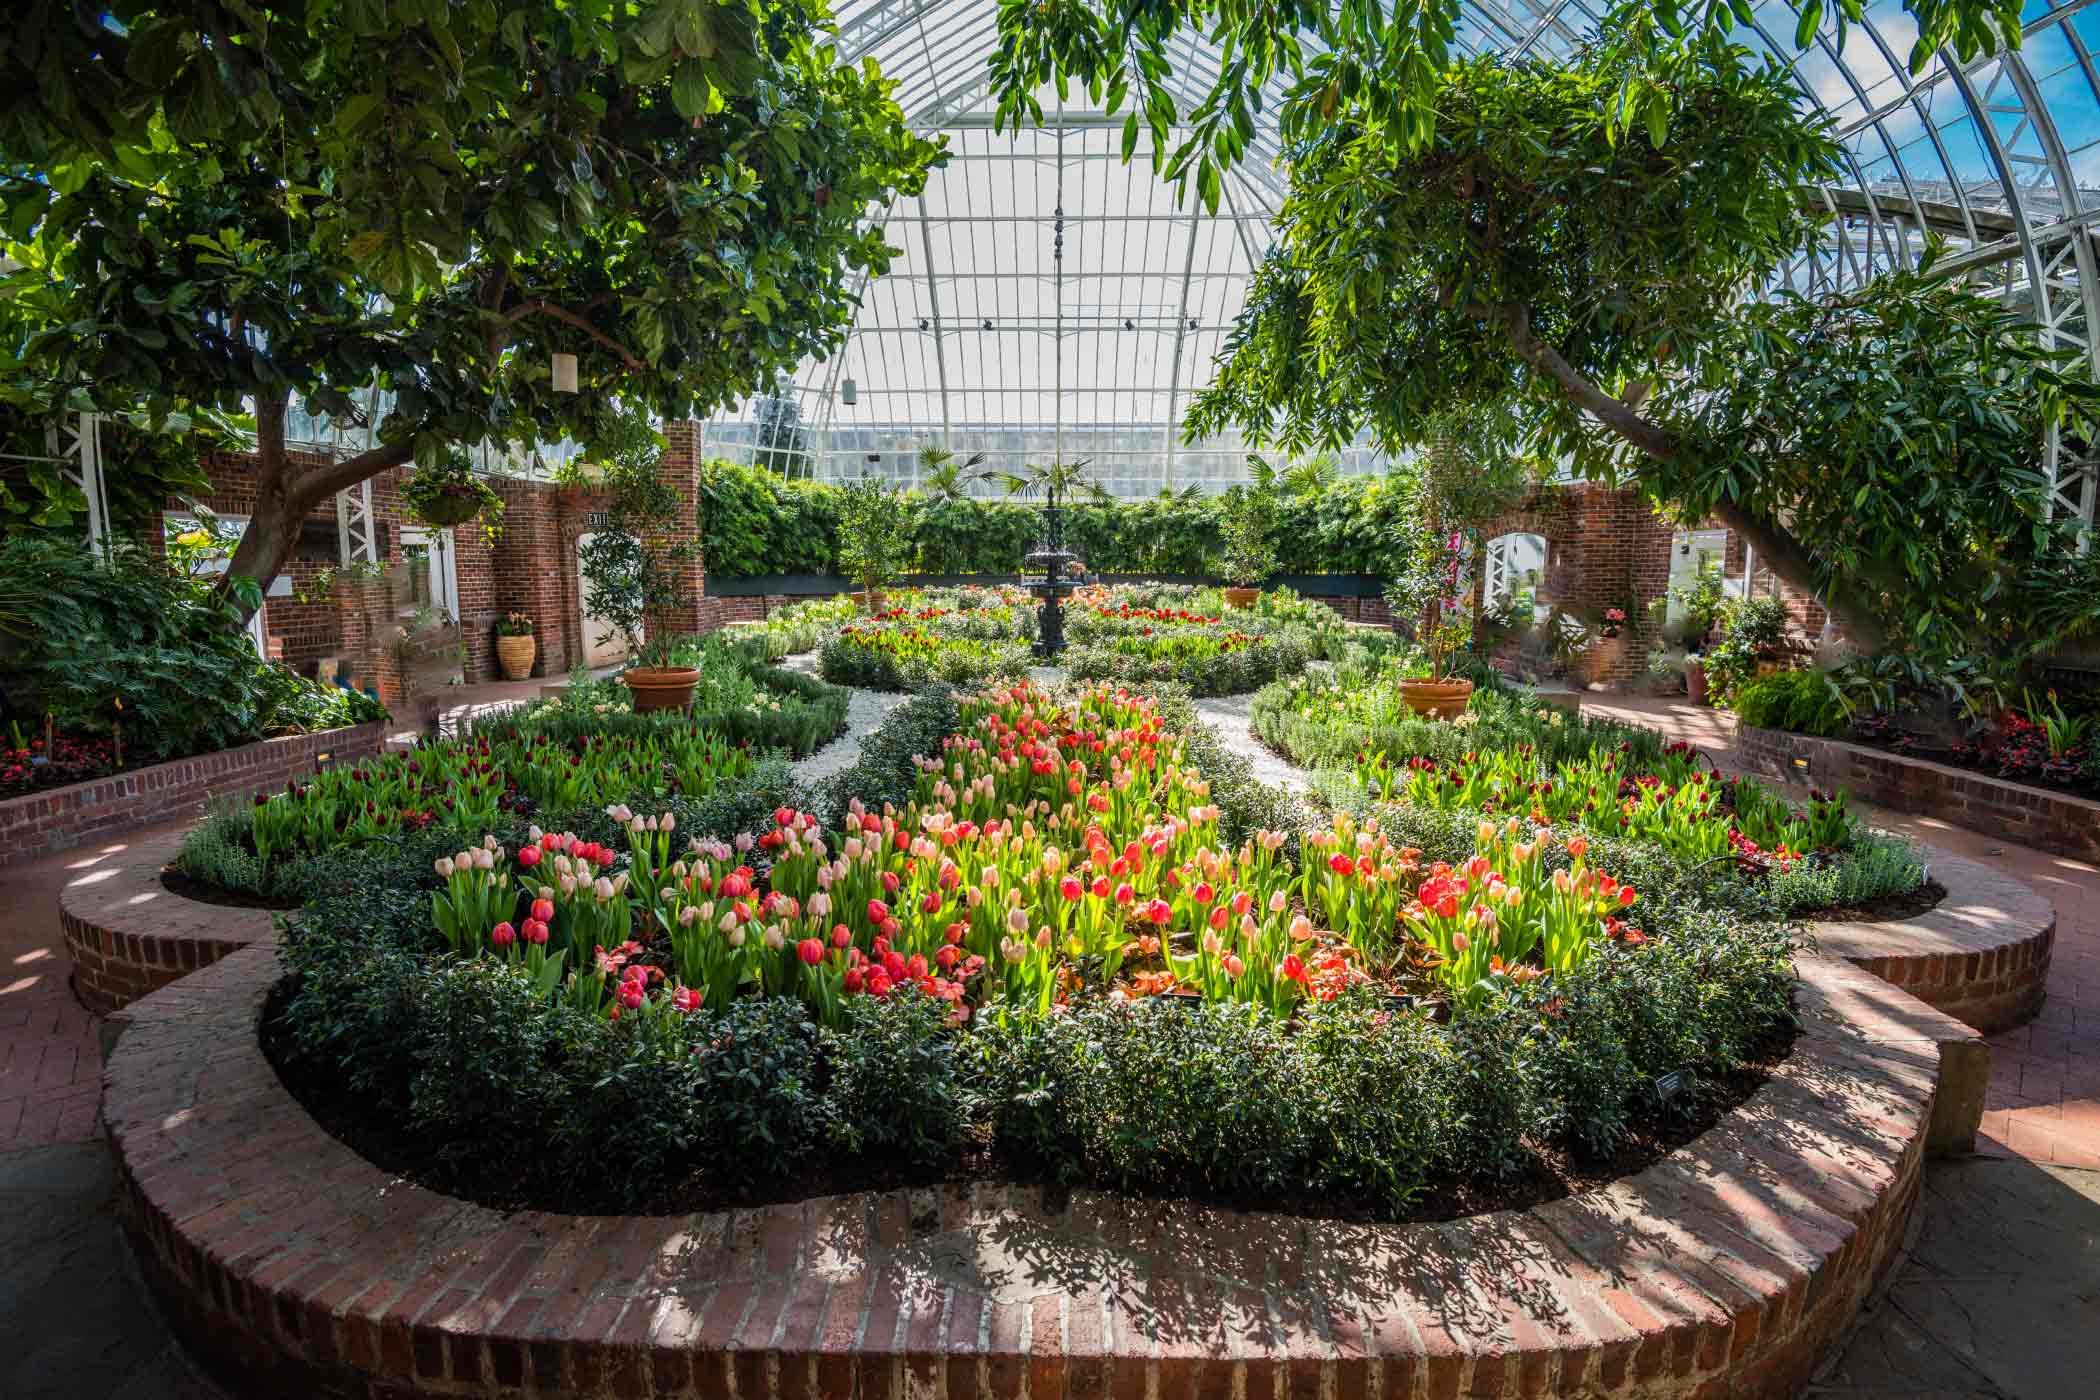 Spring flower show scents of wonder phipps conservatory and buy tickets online mightylinksfo